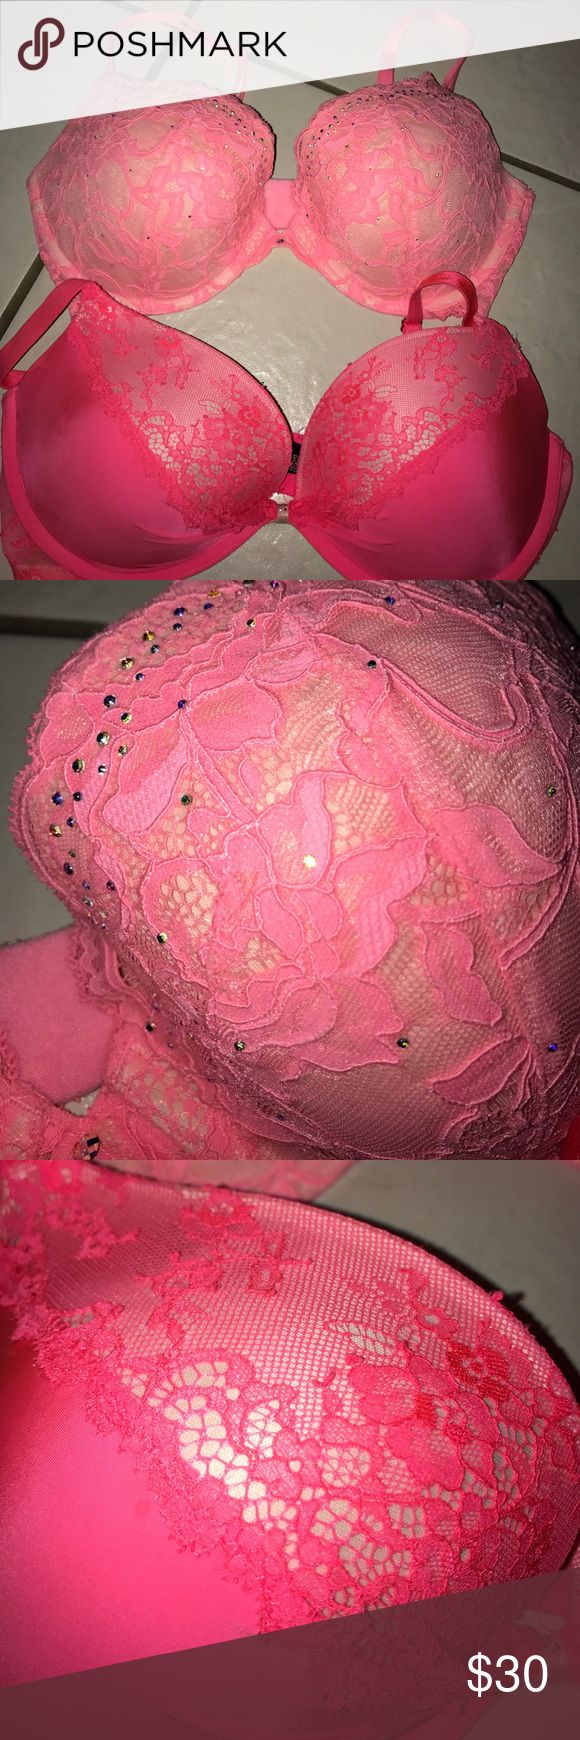 Victoria Secret Pink Lace Bras BUNDLE SET OR INDIVIDUAL... Individual price would be $12 each! Pink and lace Victoria Secret Bra. One has rhinestones with diamond in the middle. Neon pink and fuchsia. Worn less than 5 times// fairly worn. Victoria's Secret Intimates & Sleepwear Bras